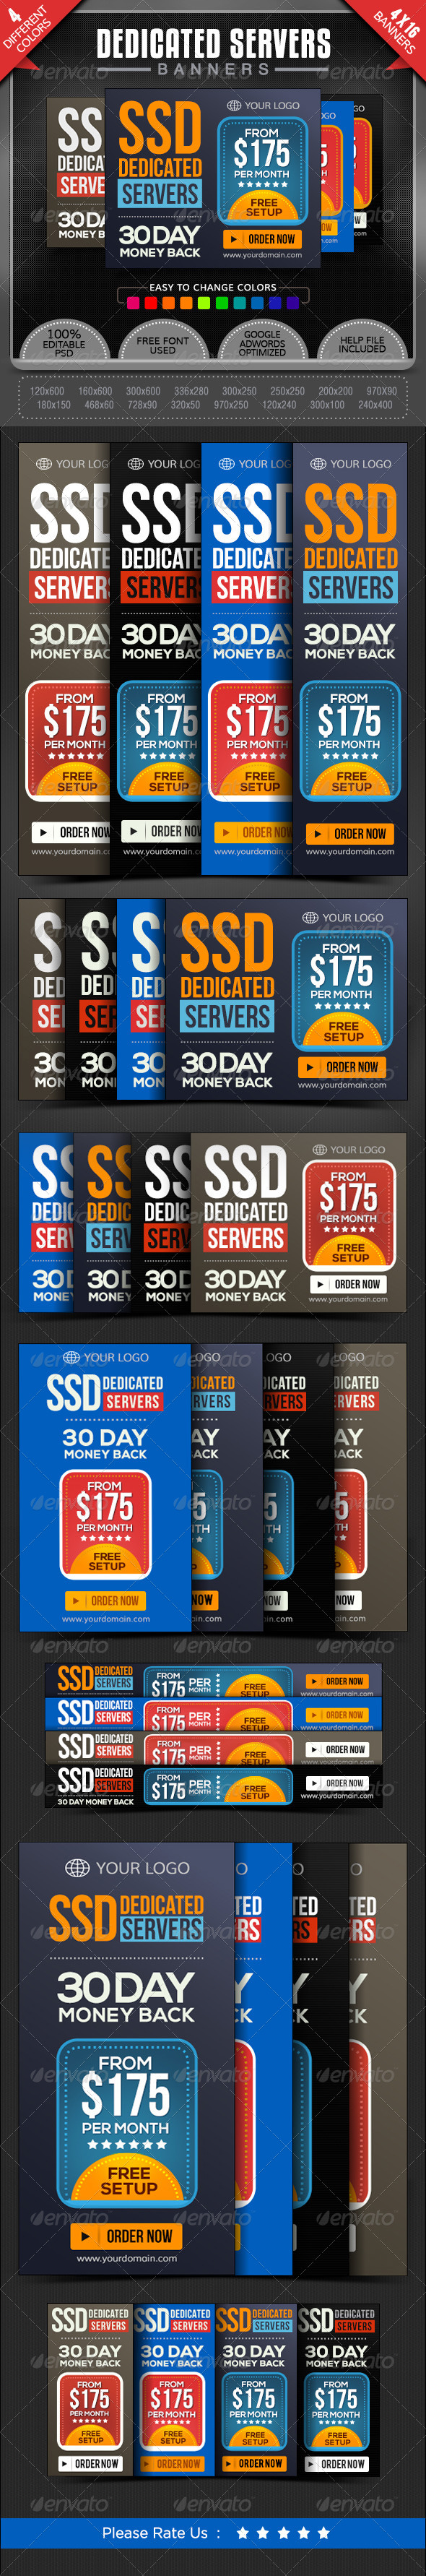 GraphicRiver Dedicated Server Banners 7878736